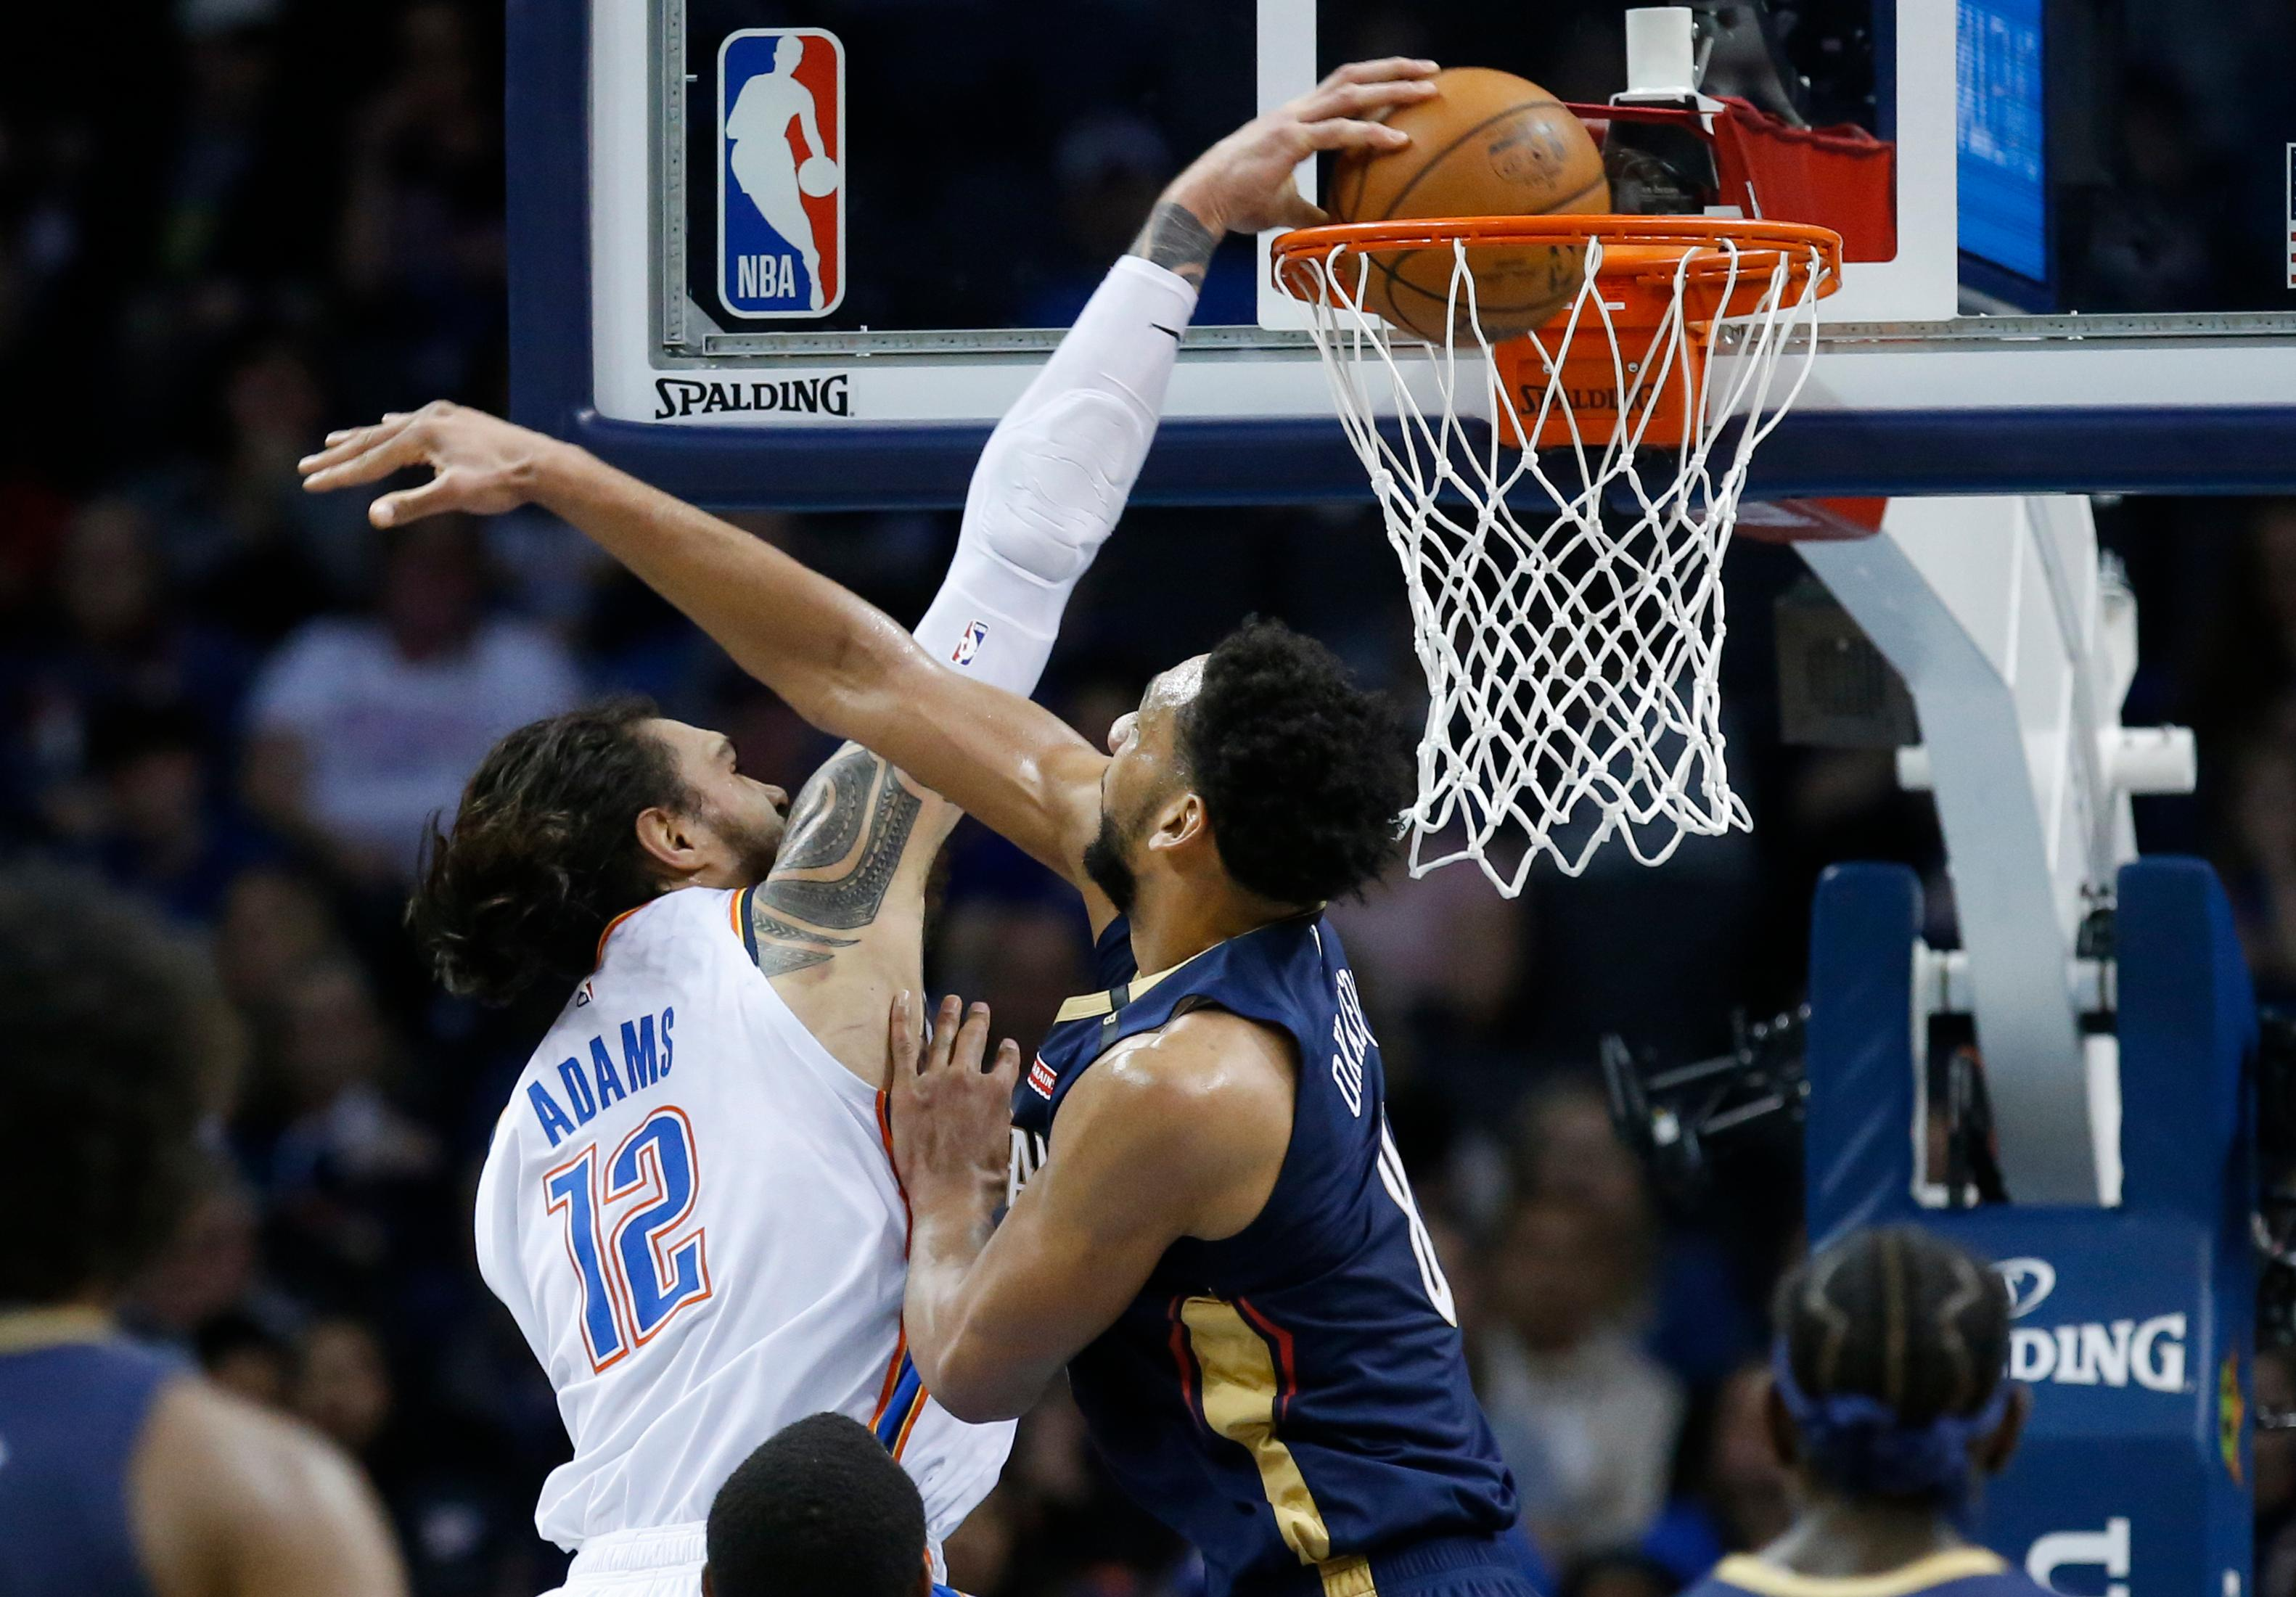 Oklahoma City Thunder center Steven Adams (12) dunks next to New Orleans Pelicans center Jahlil Okafor (8) during the first half of an NBA basketball game in Oklahoma City, Thursday, Jan. 24, 2019. (AP Photo/Sue Ogrocki)